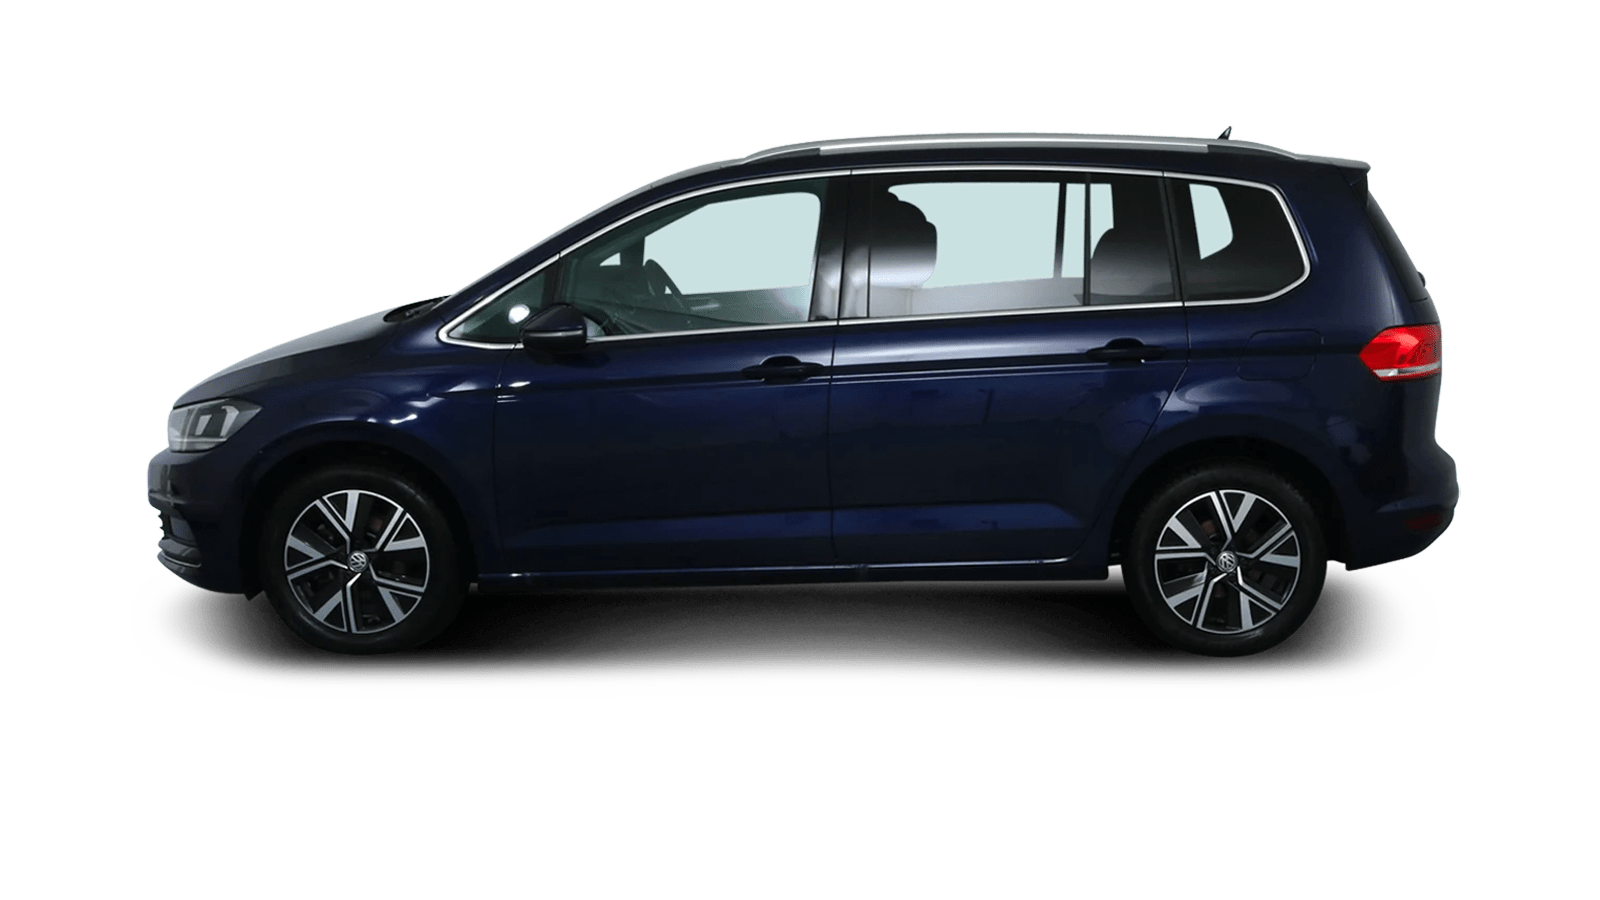 VW Touran Blue back - Clyde car subscription